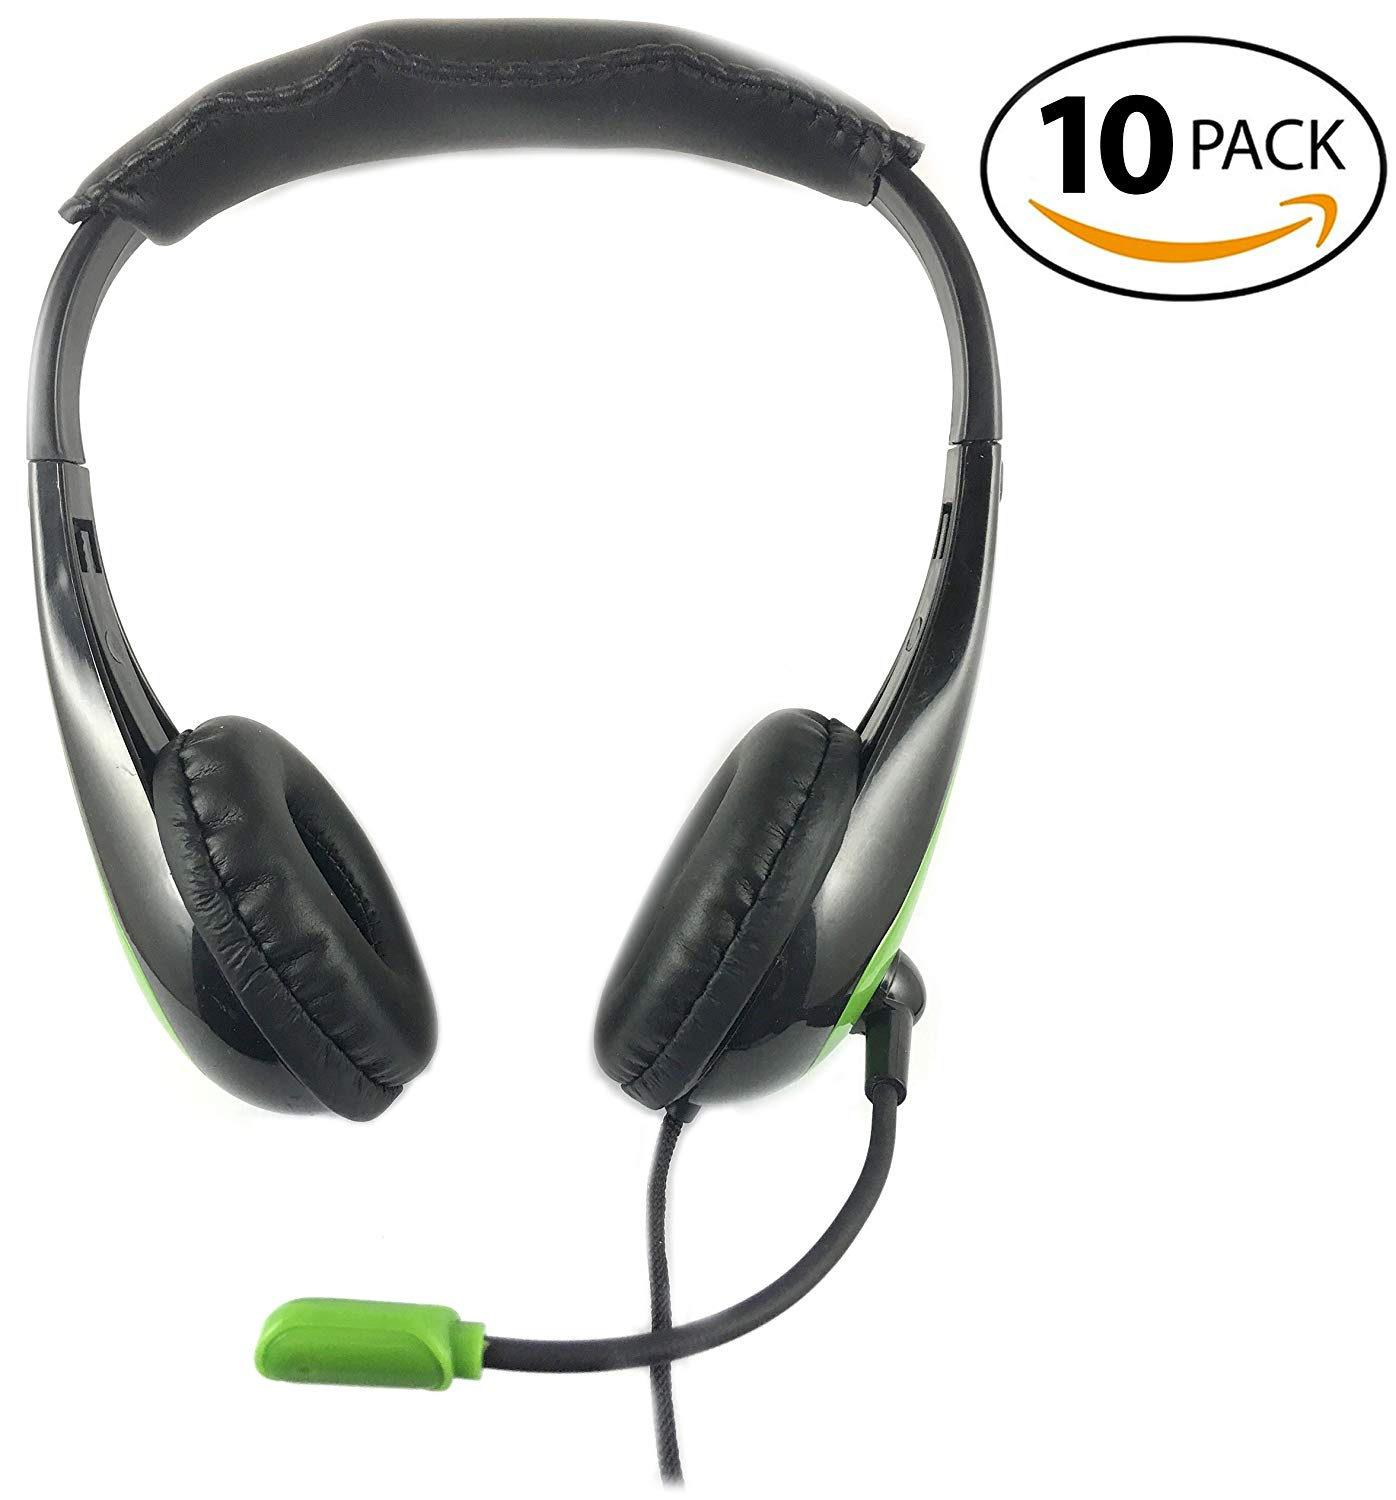 SmithOutlet 10 Pack Low Cost Headphones with Microphone Green Bulk